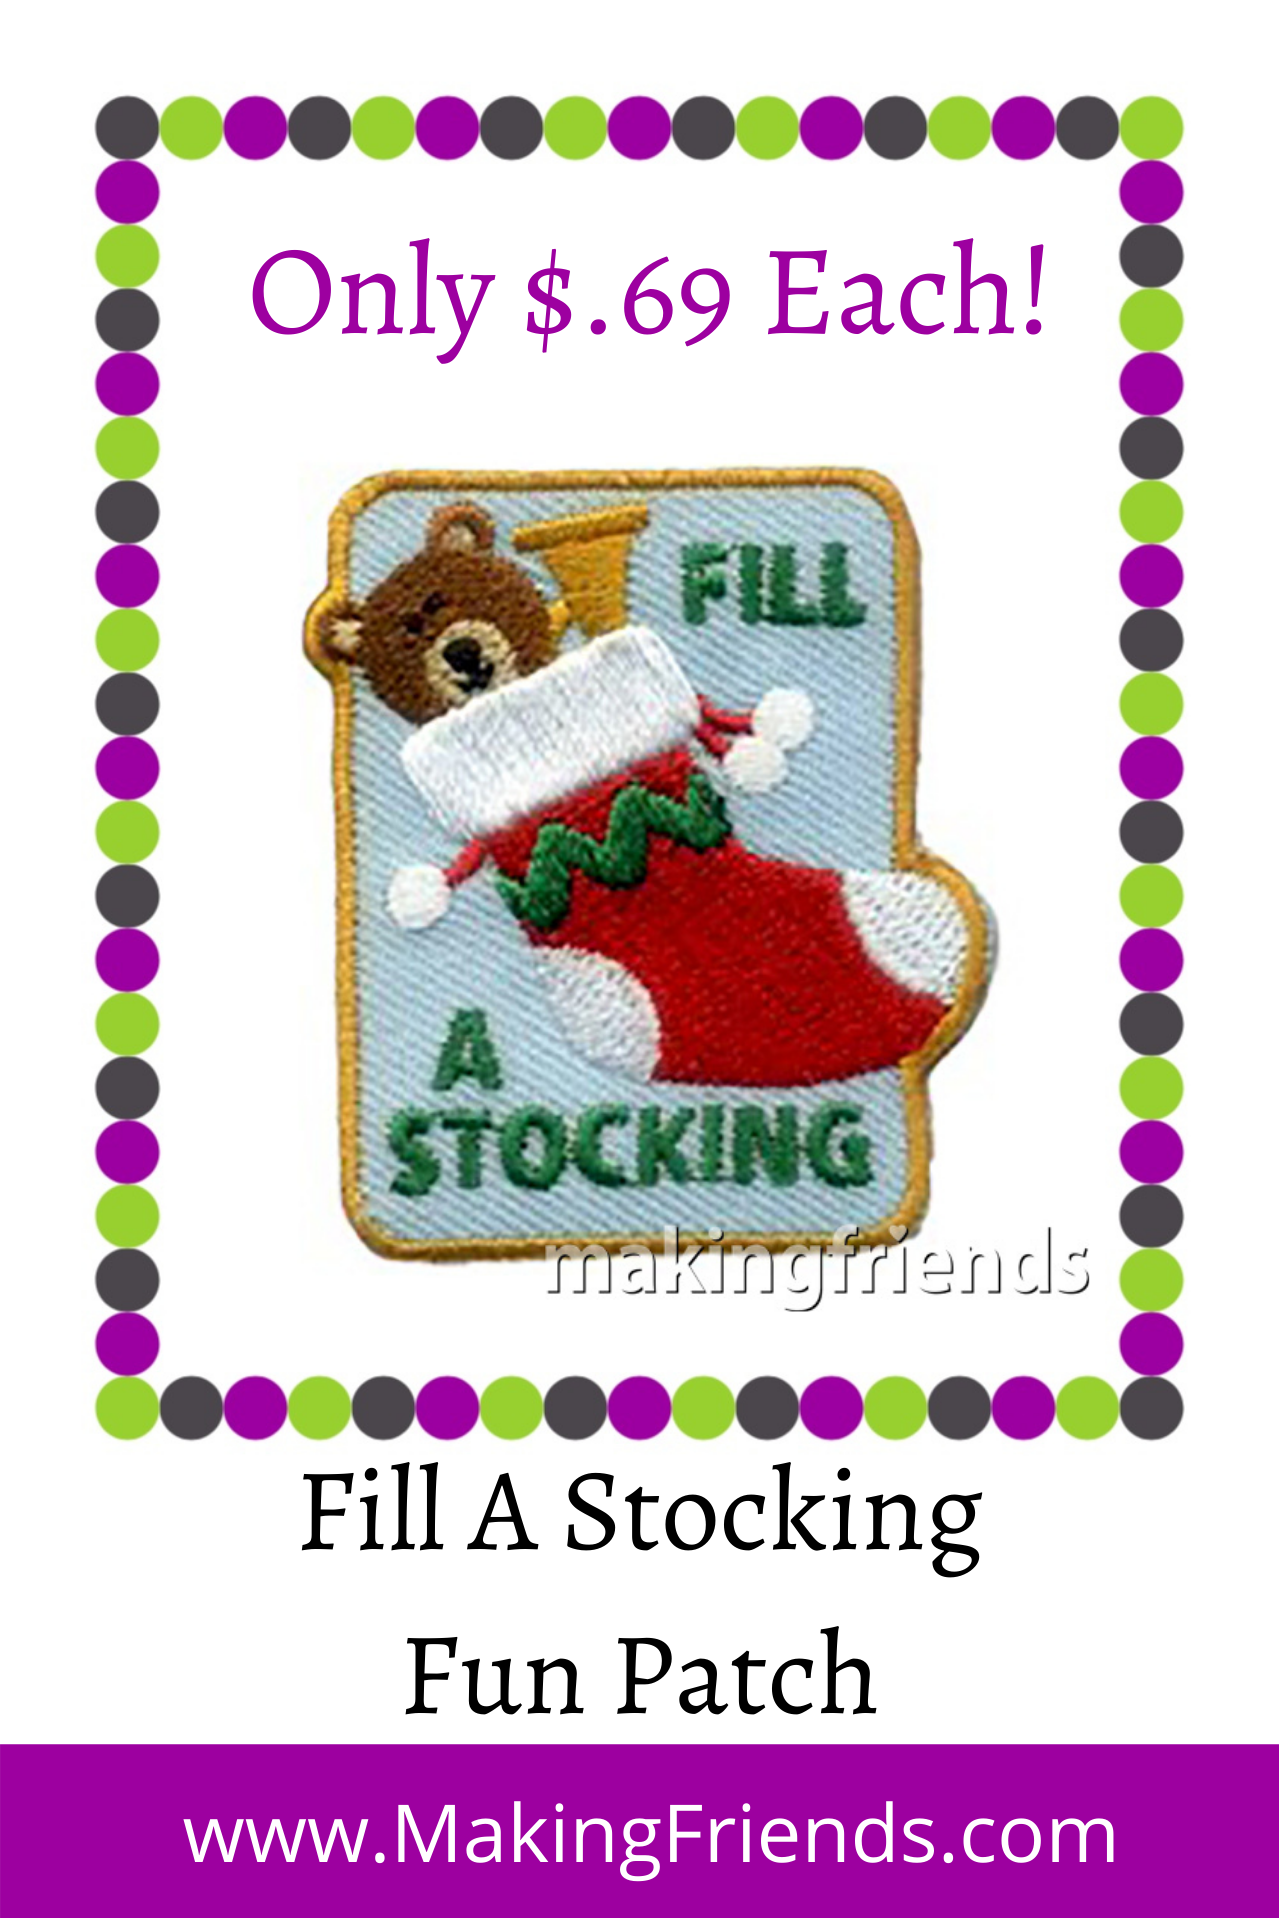 Your girls can fill stockings to donate to a nursing home, hospital, shelter, or veterans home. $.69 each free shipping available #makingfriends #fillastocking #communityservice #giveback #veterans #stockings #christmasstockings #donatestockings via @gsleader411